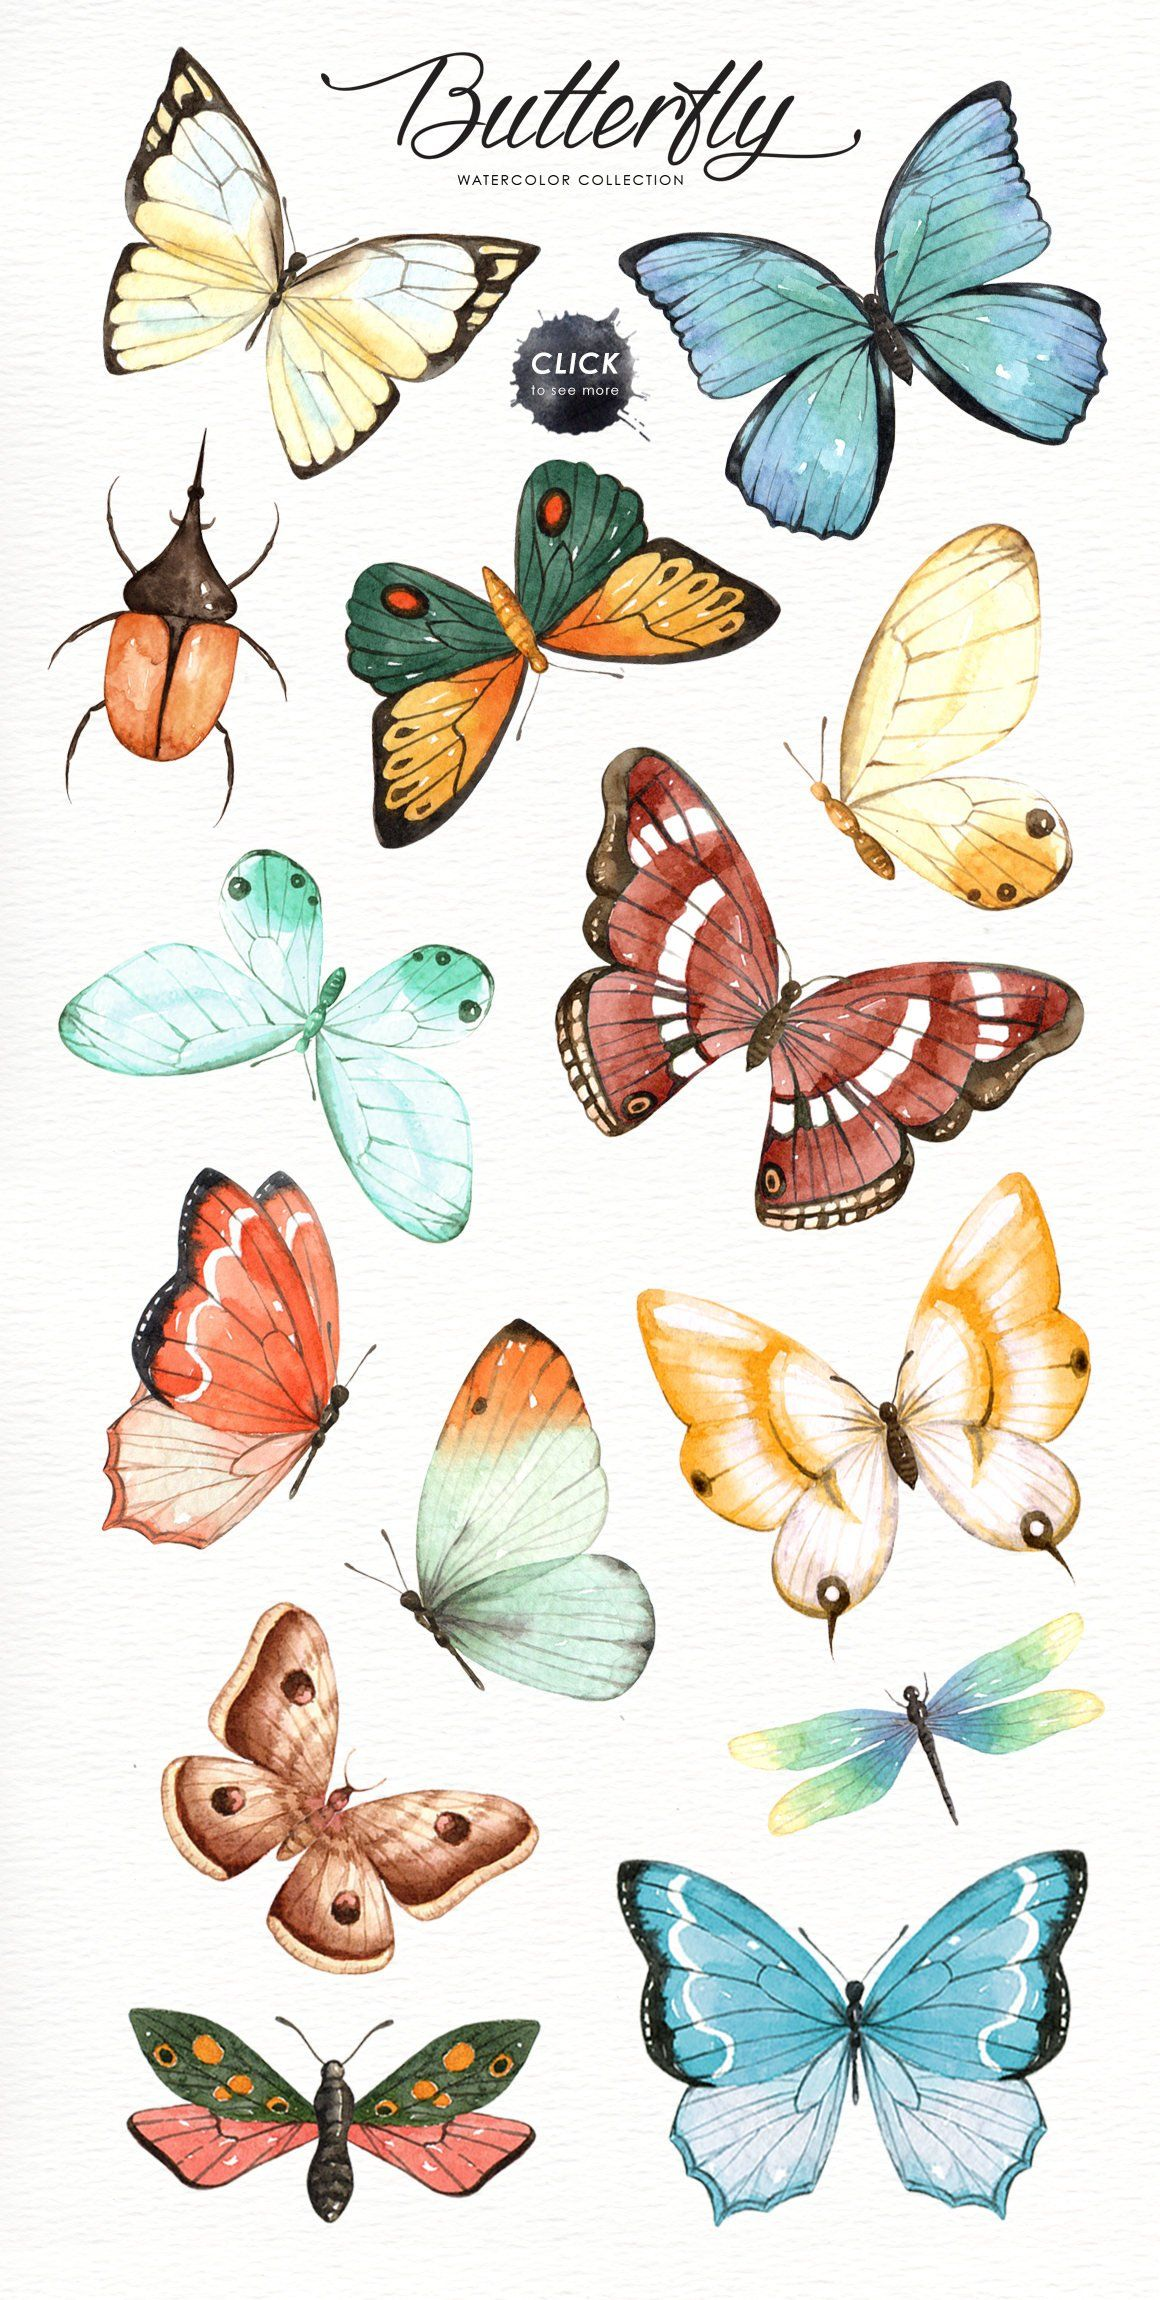 Photo of Butterfly Watercolor Collection, Butterflies Cliparts, Digital Butterfly, Watercolor Cliparts, Party Cliparts, Moth Beetle Ladybug Dragonfly